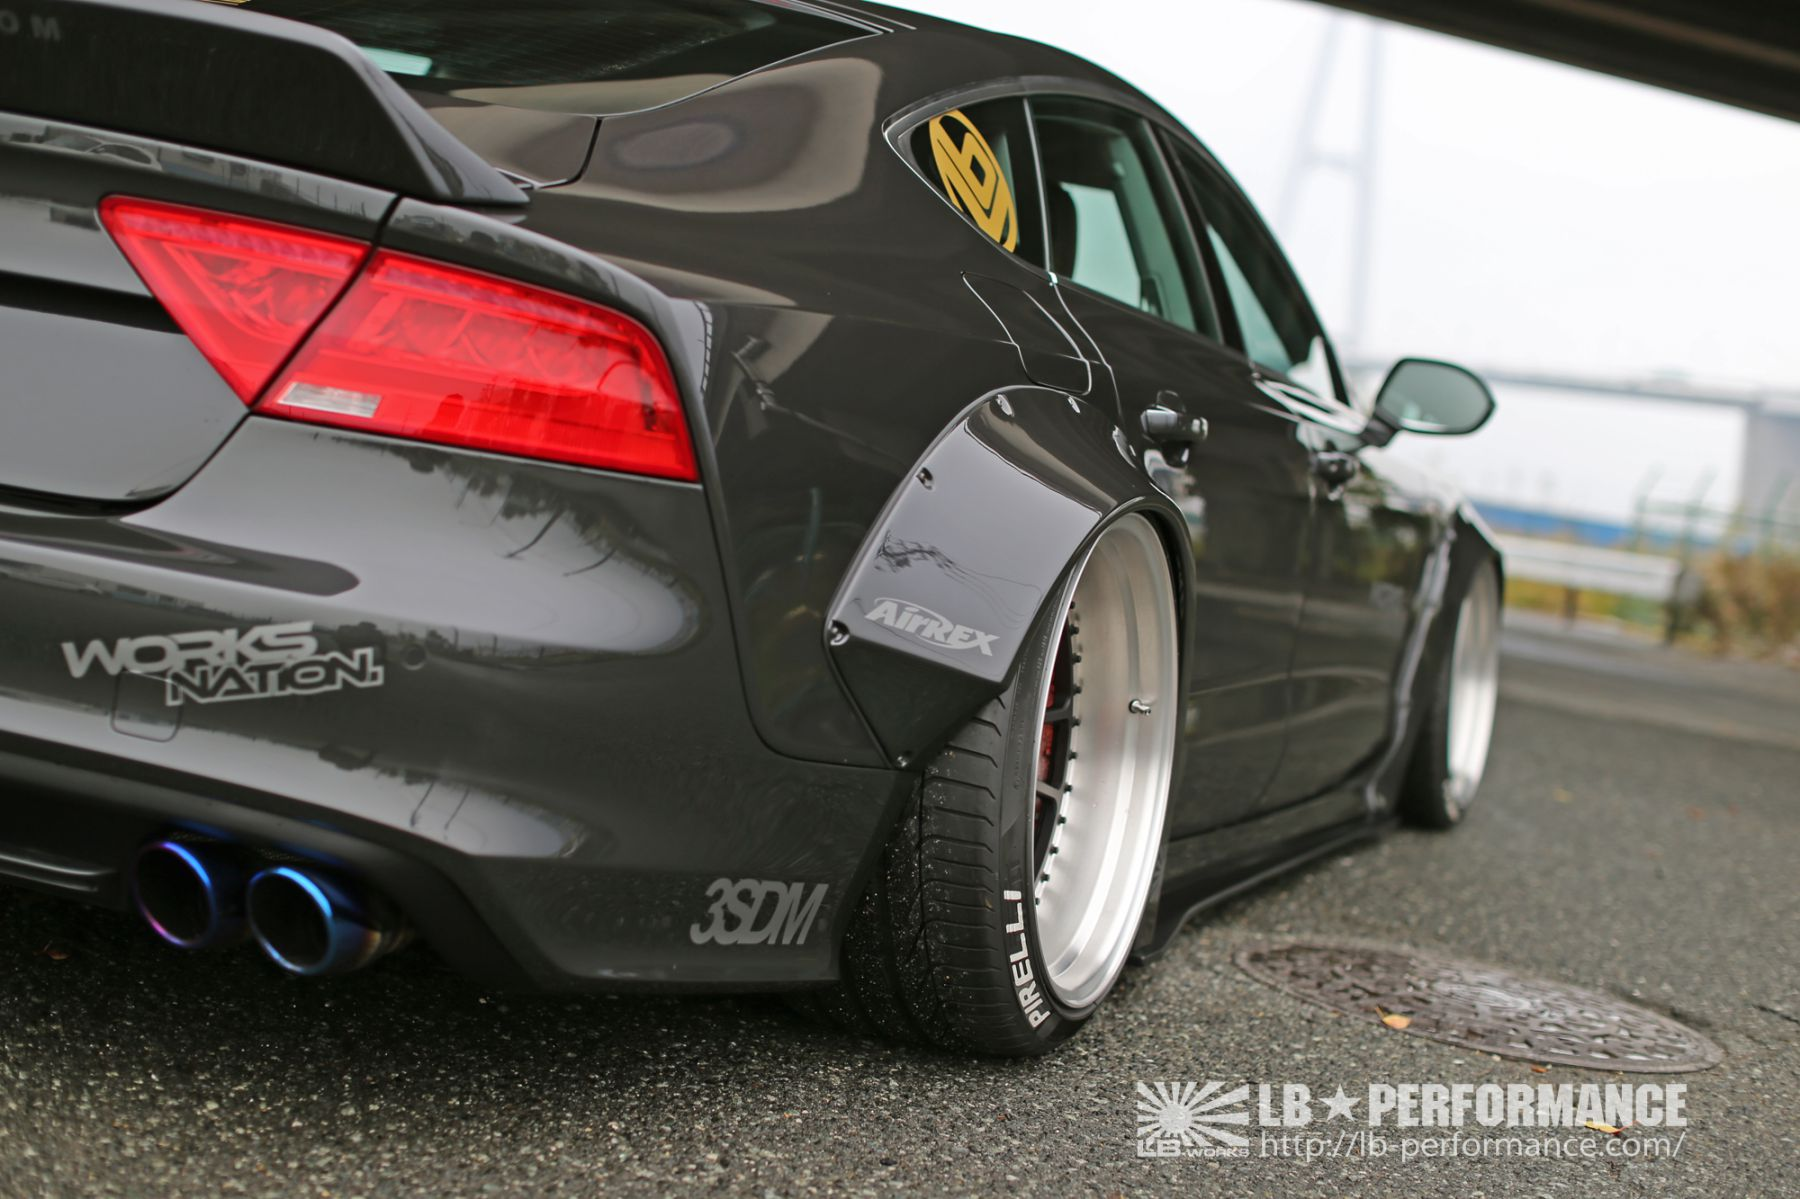 IMG_1523_compressed-1 LB-WORKS AUDI A7 / S7